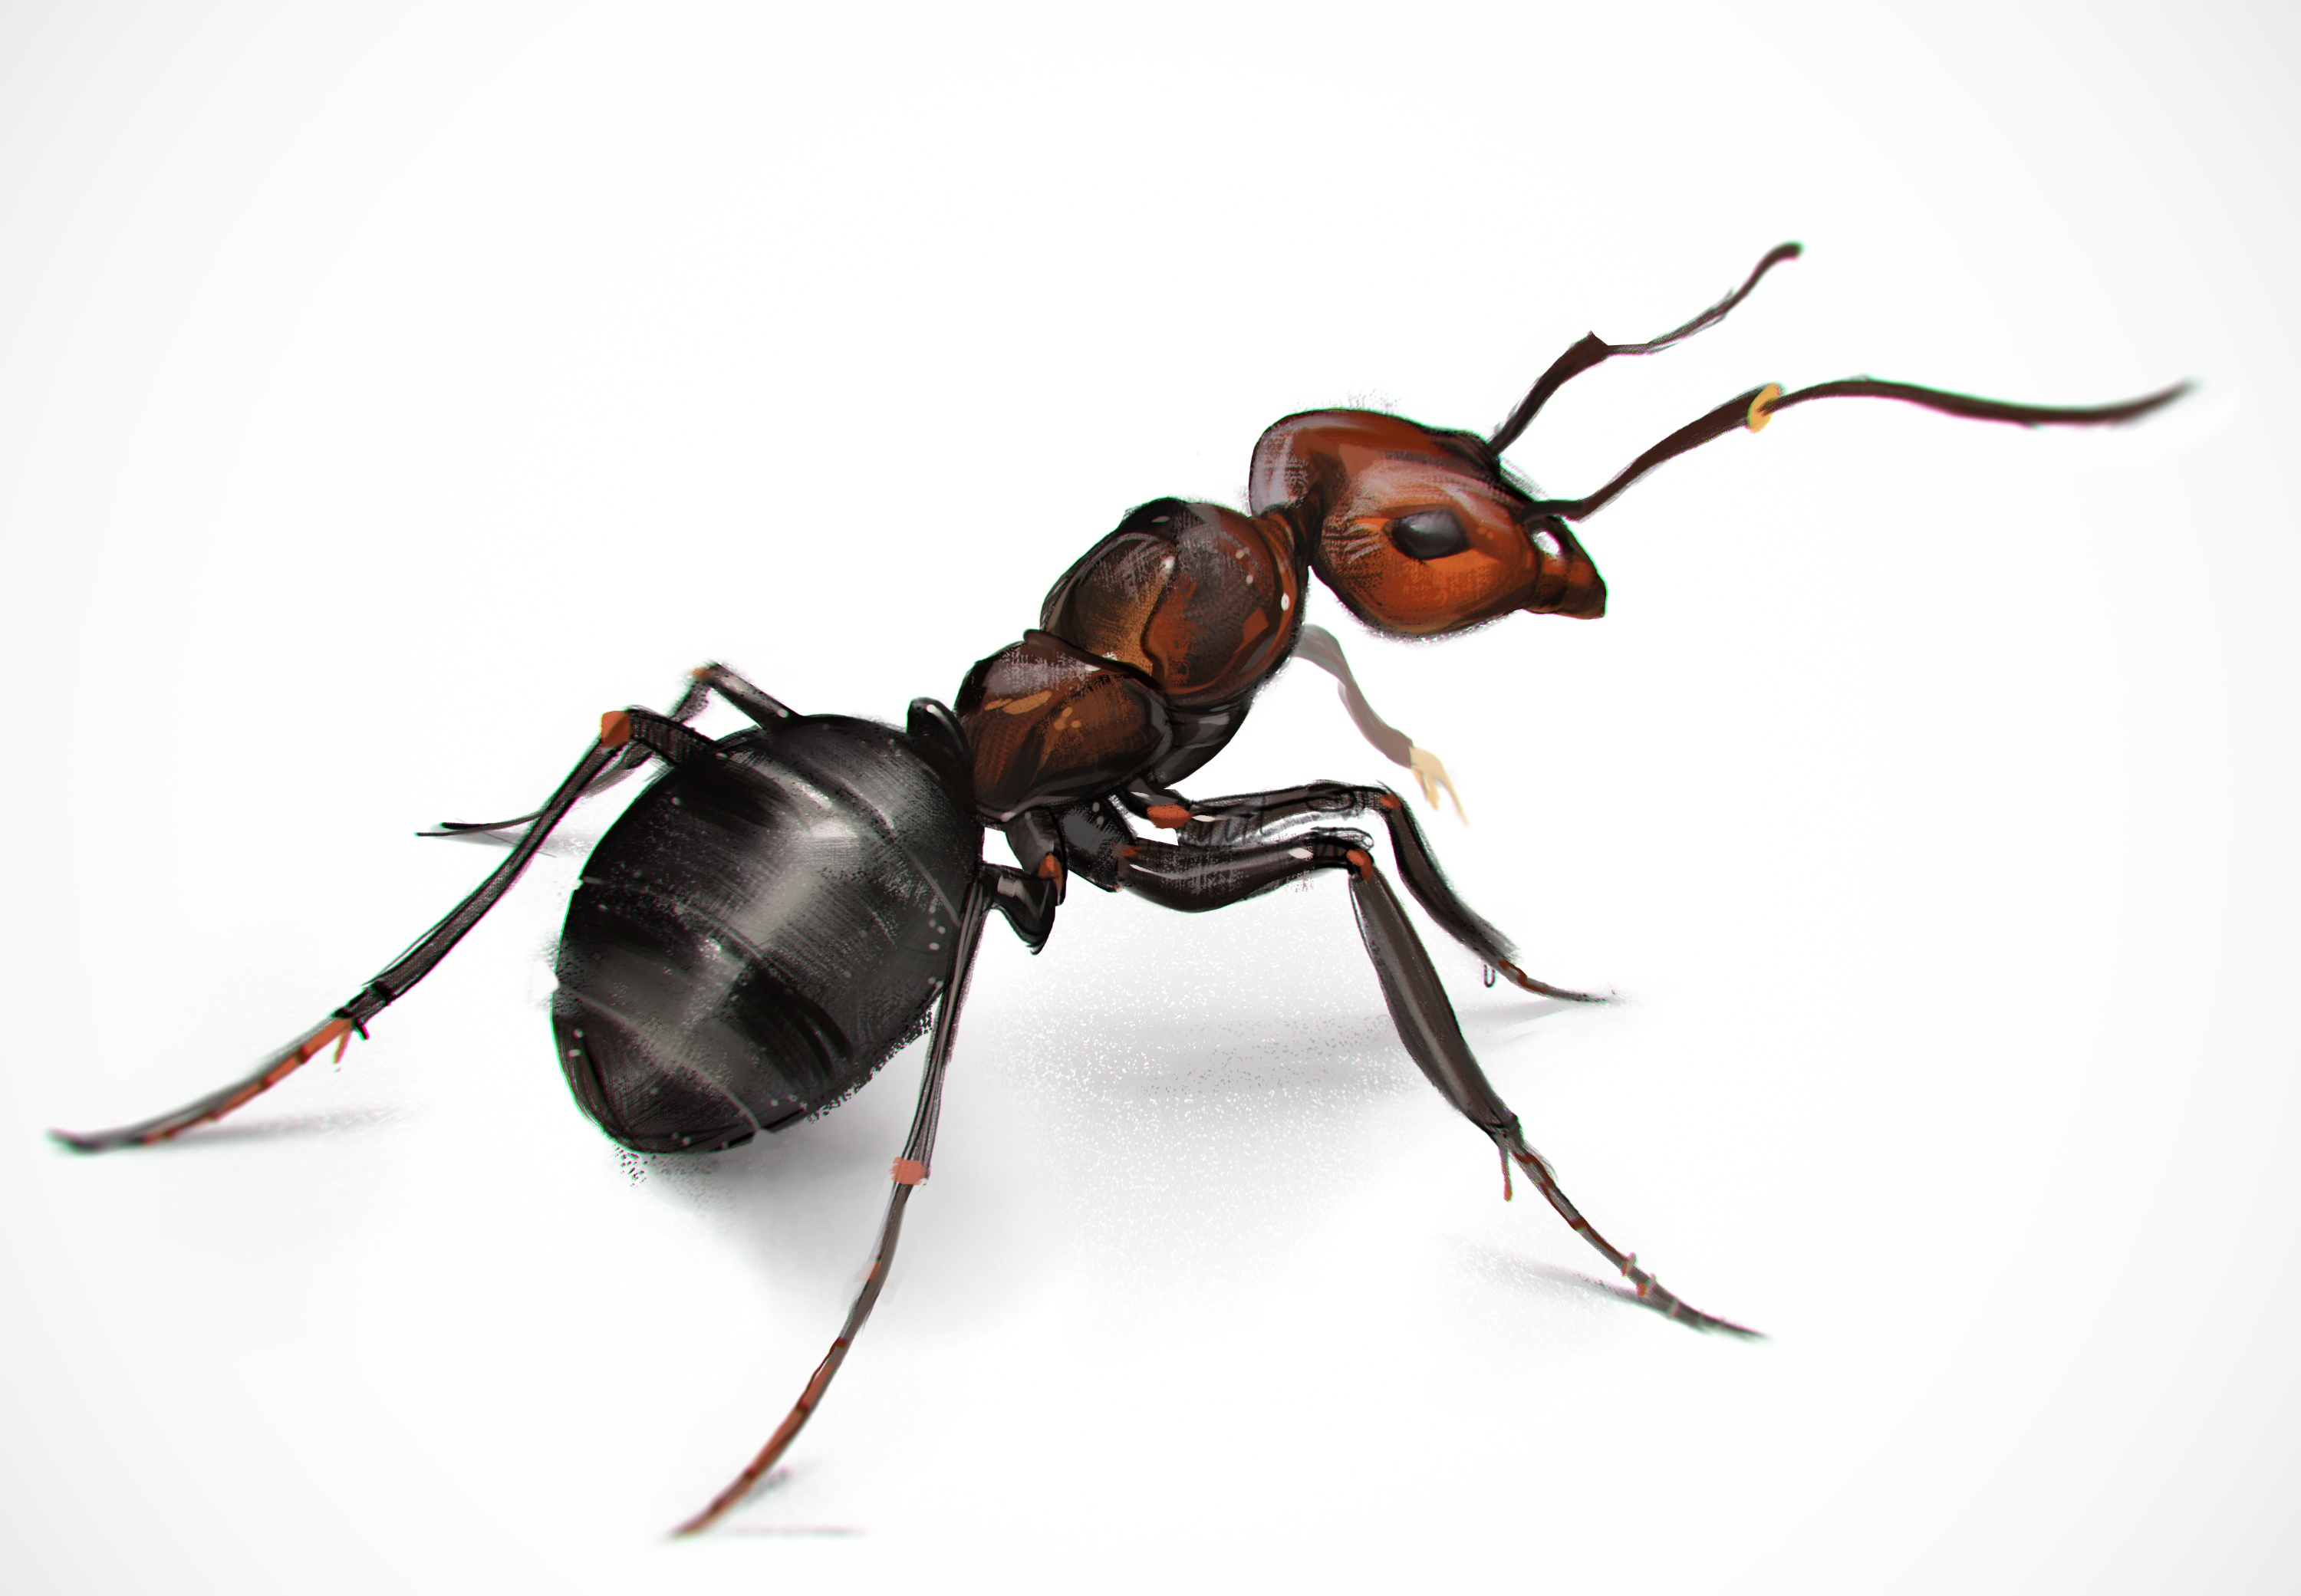 An ant study! Woop! - Ant PNG